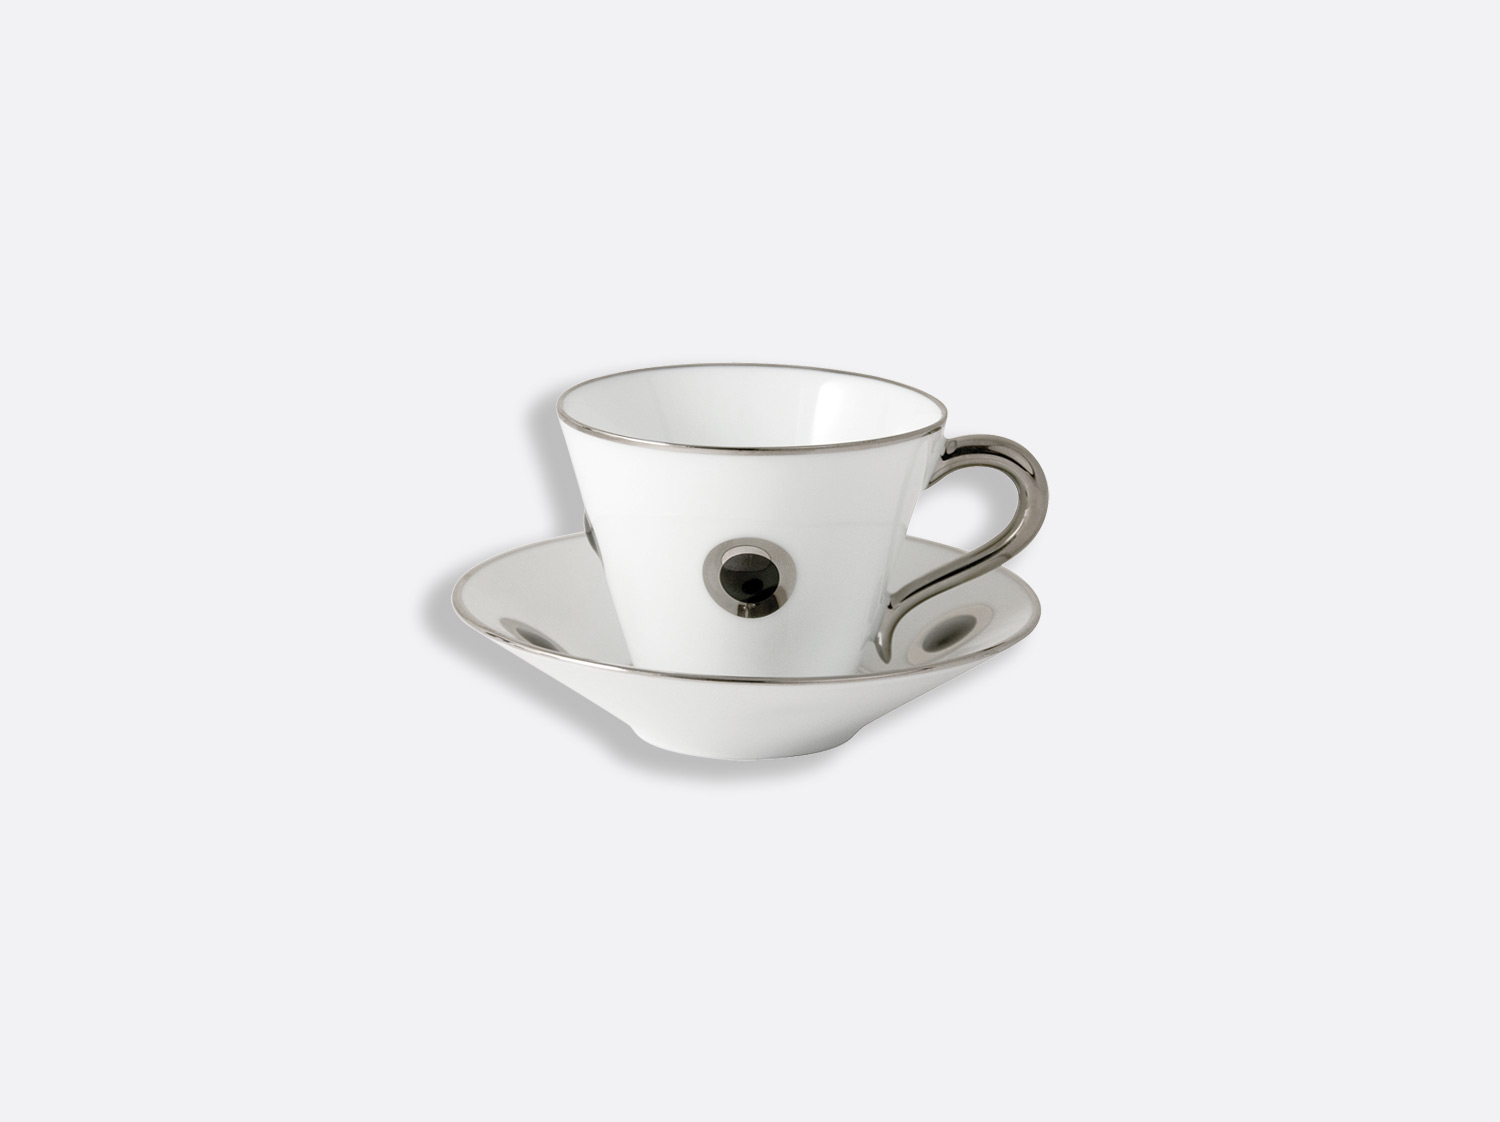 China Espresso cup and saucer 4.4 oz of the collection Ithaque noir platine | Bernardaud